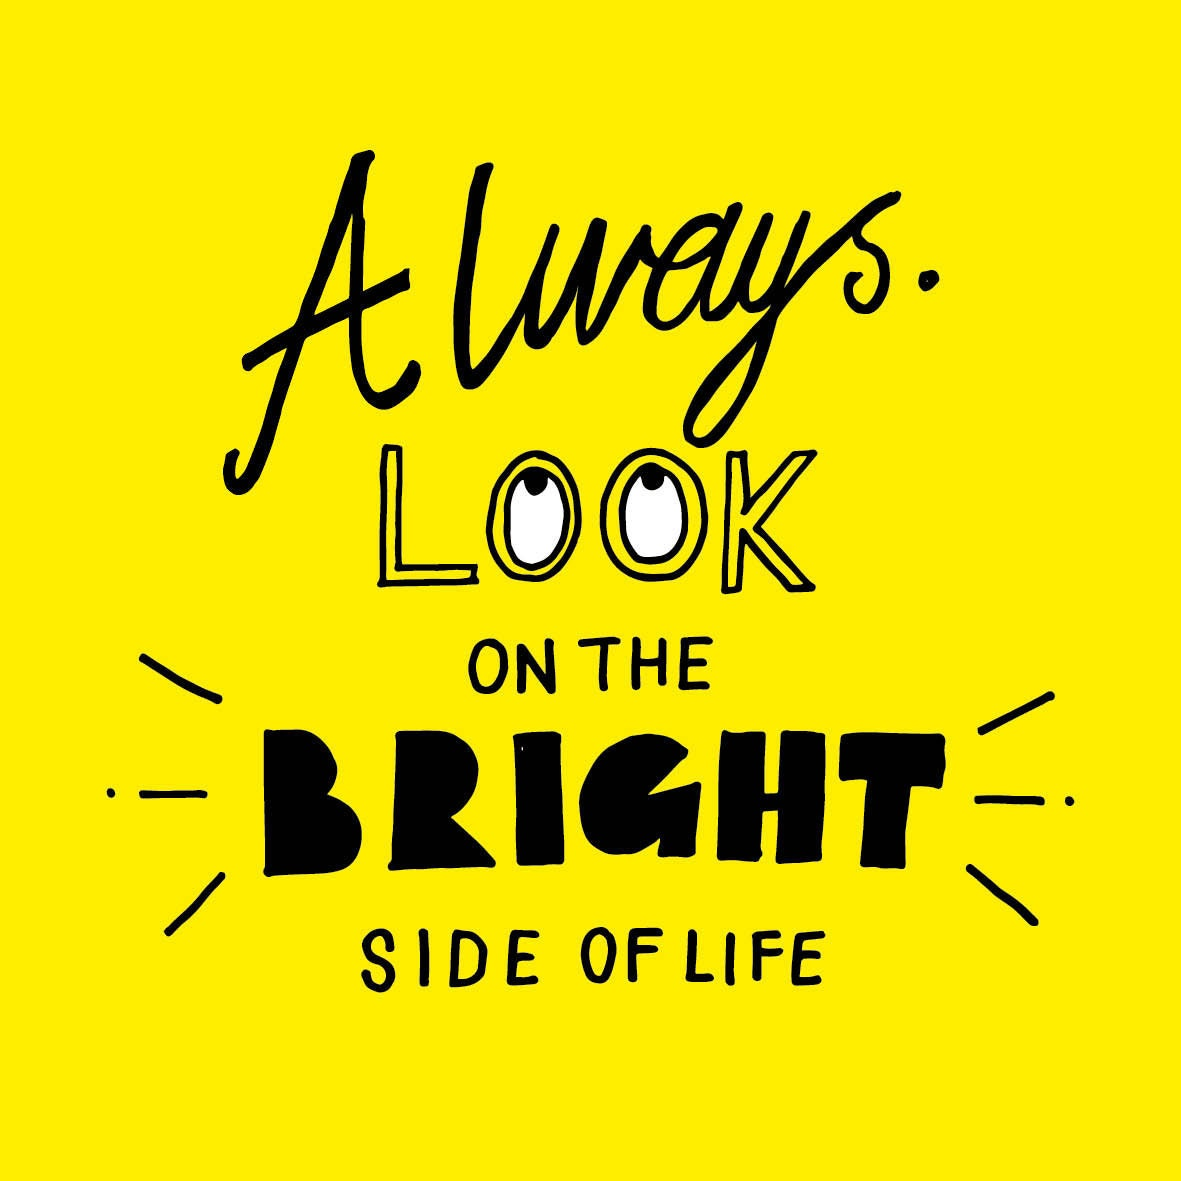 Hand lettering bright side of life